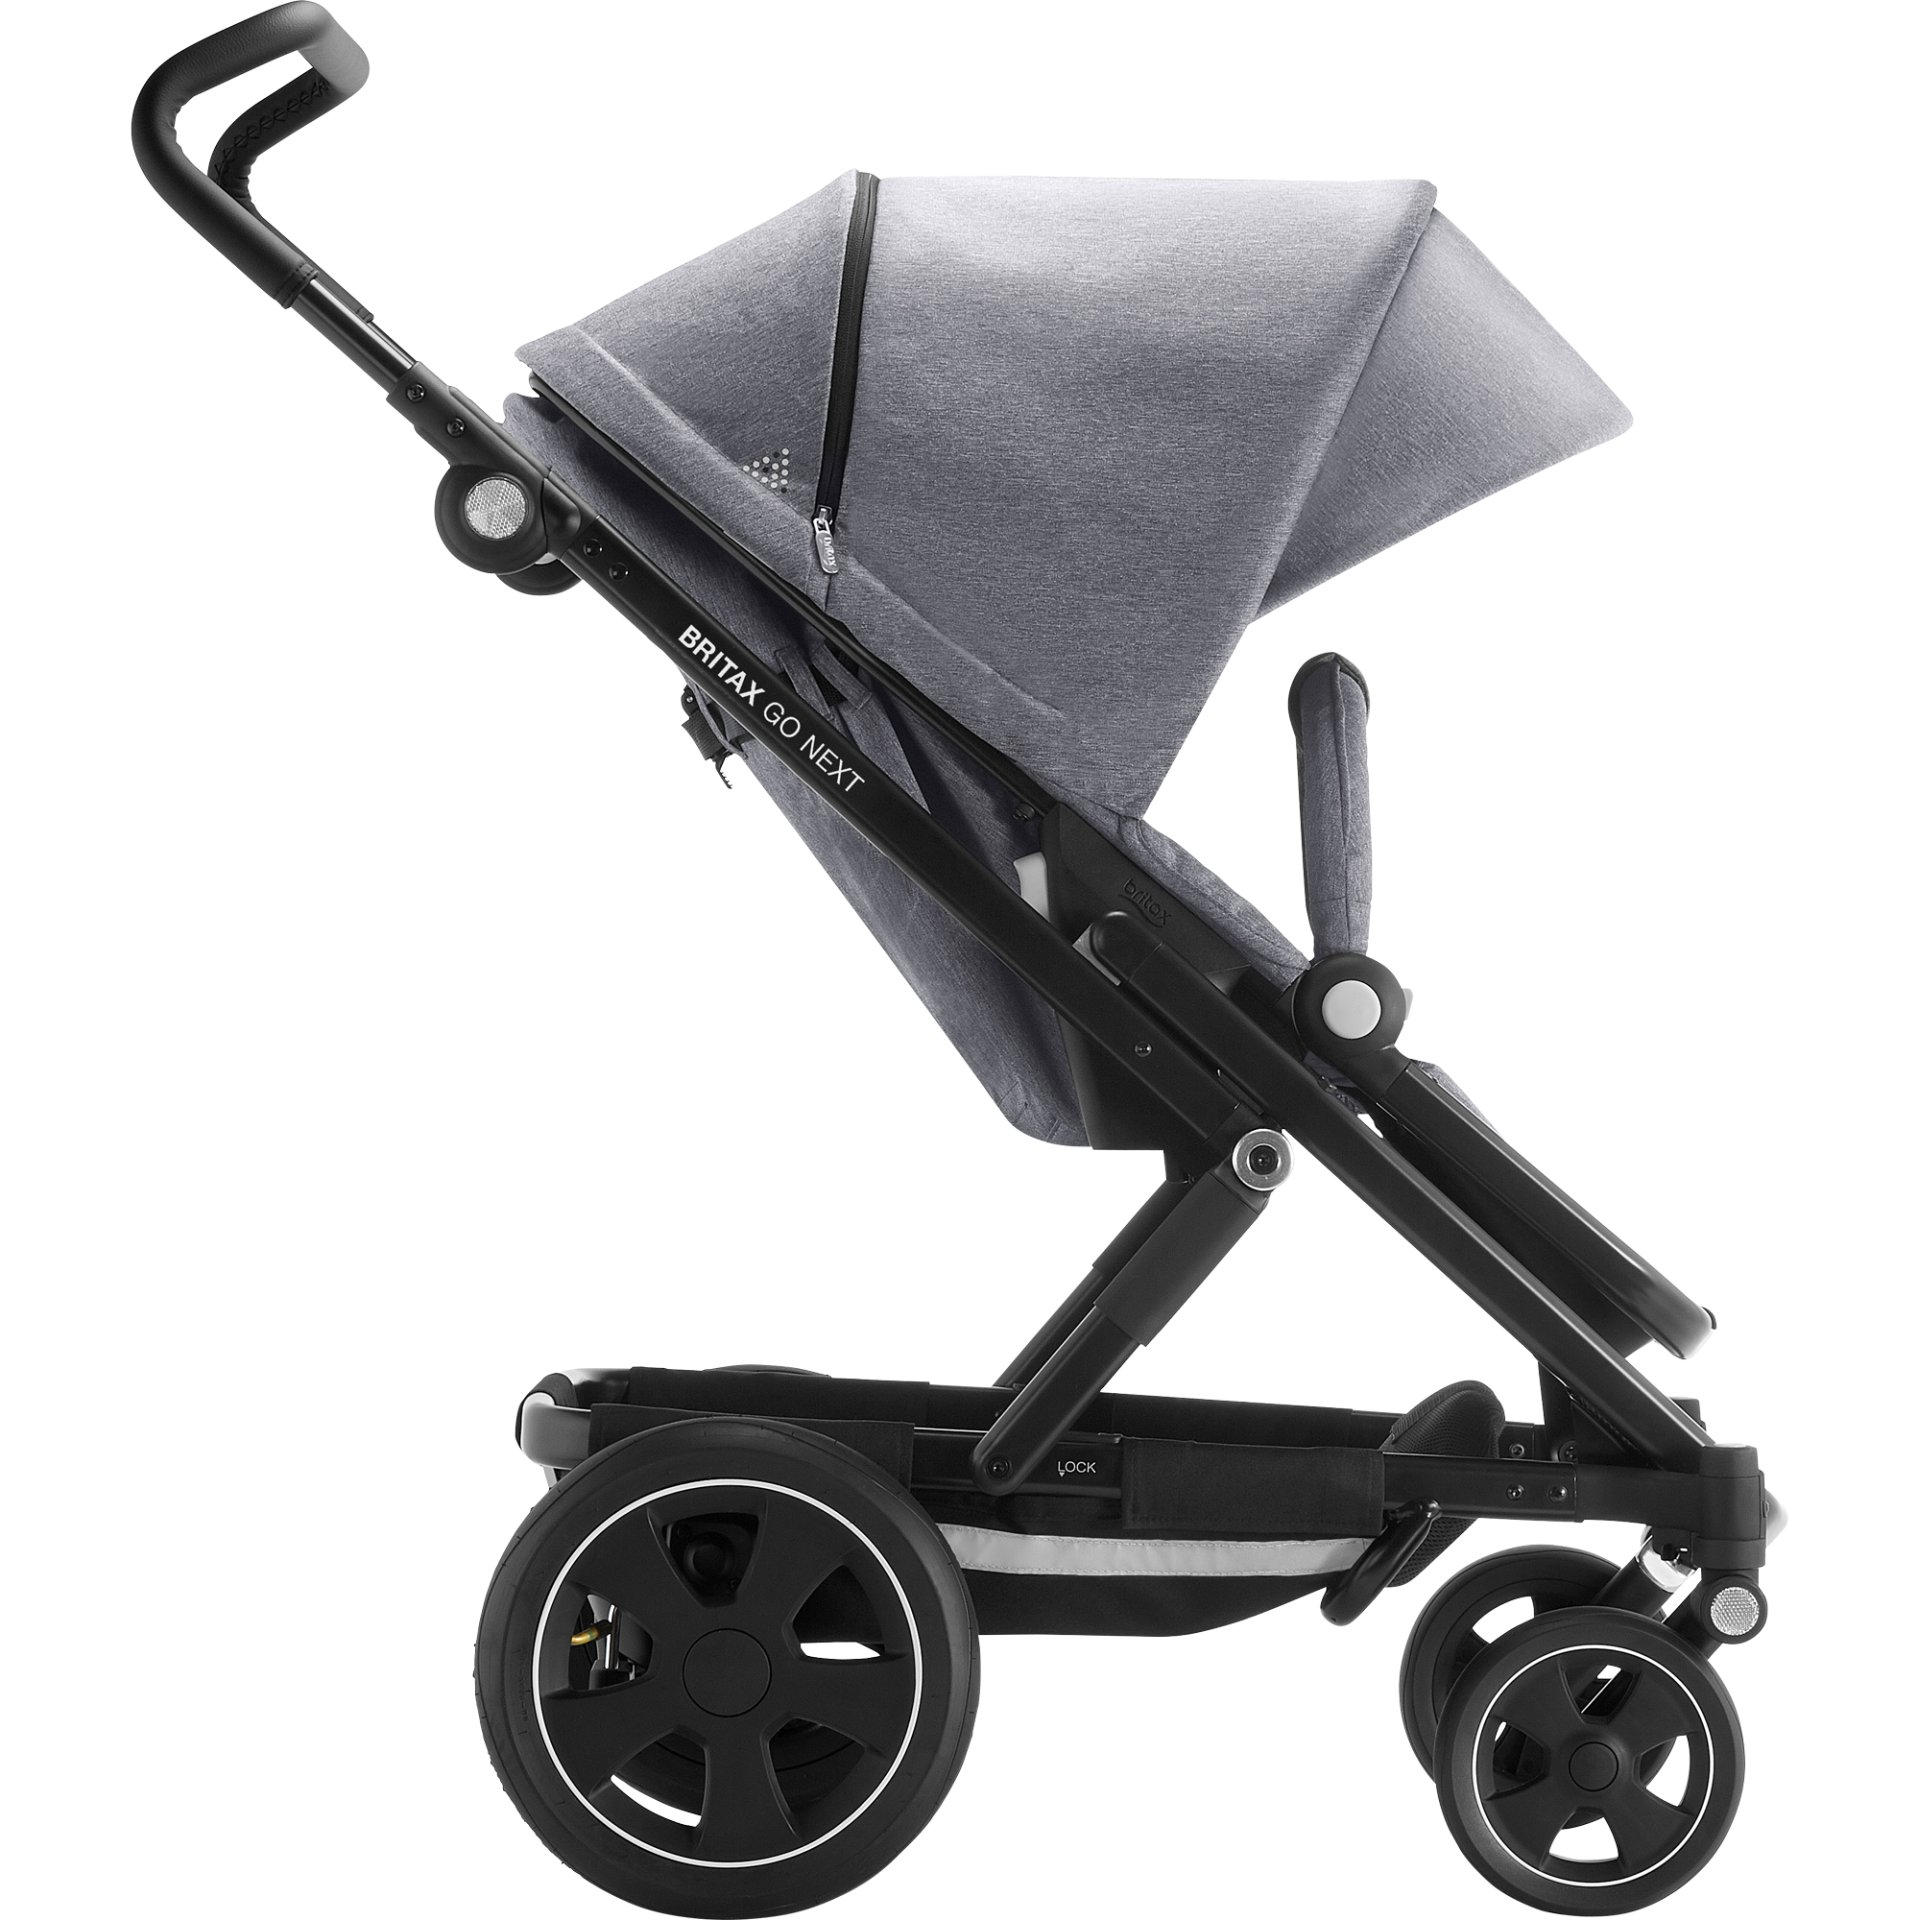 britax r mer kinderwagen go next 2 2019 grey melange black online kaufen bei kidsroom kinderwagen. Black Bedroom Furniture Sets. Home Design Ideas